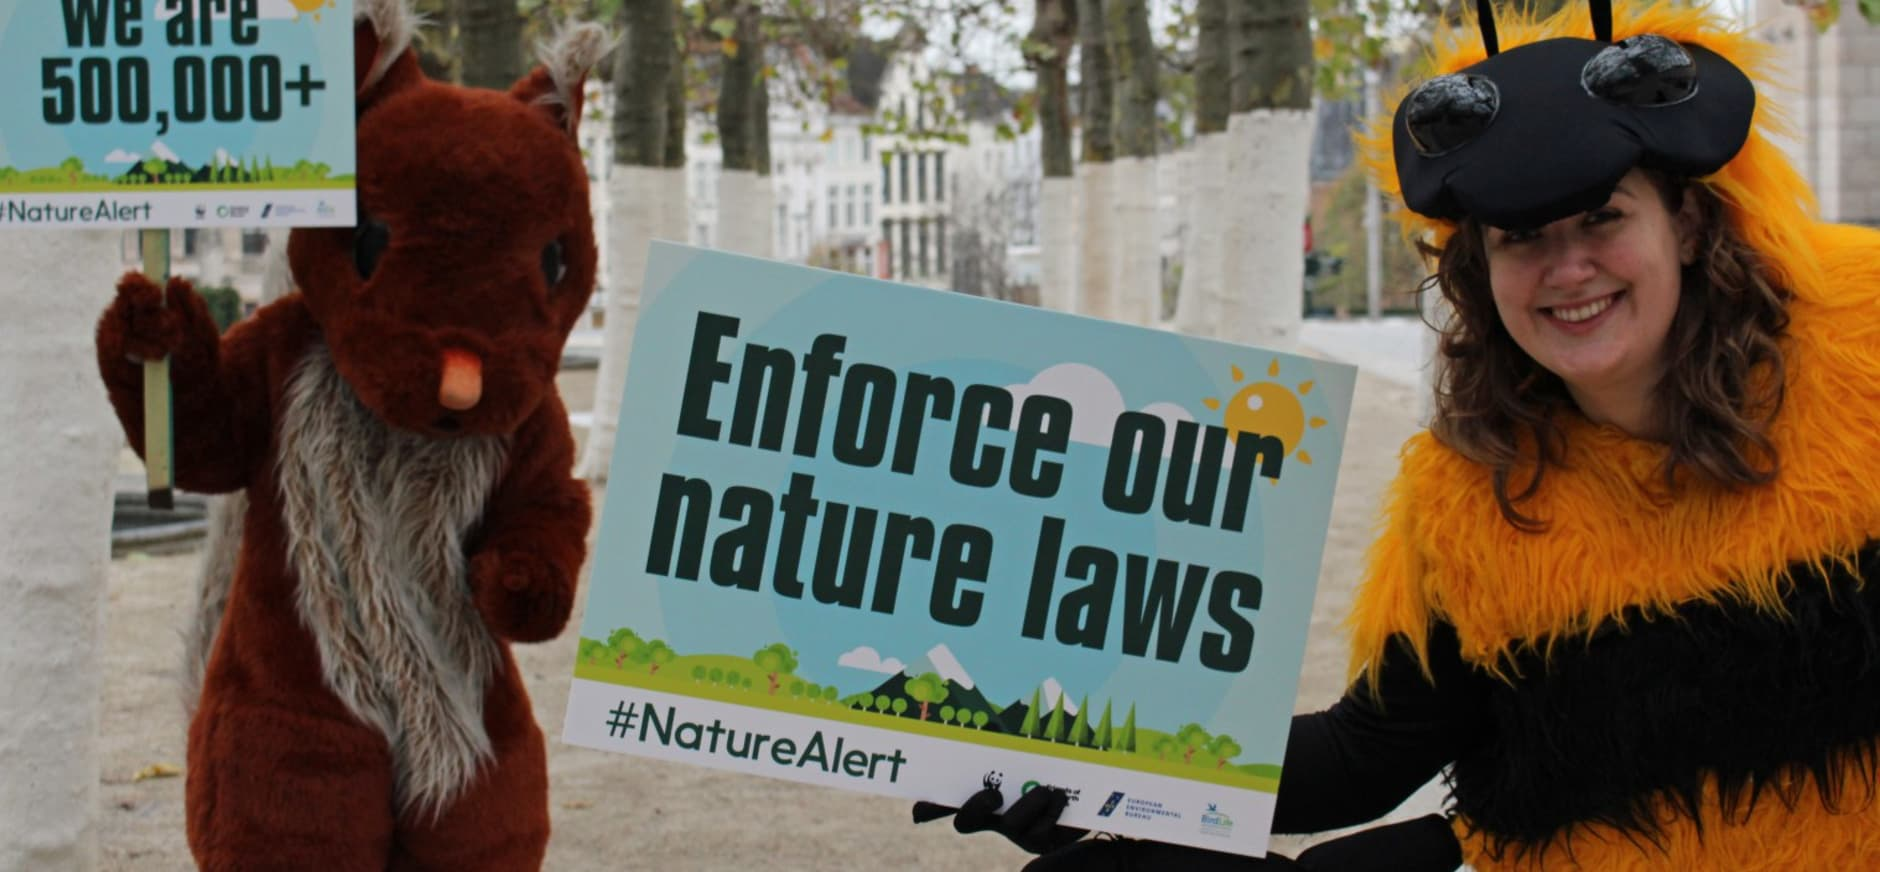 Campagne 'Enforce our Nature Laws' #naturealert